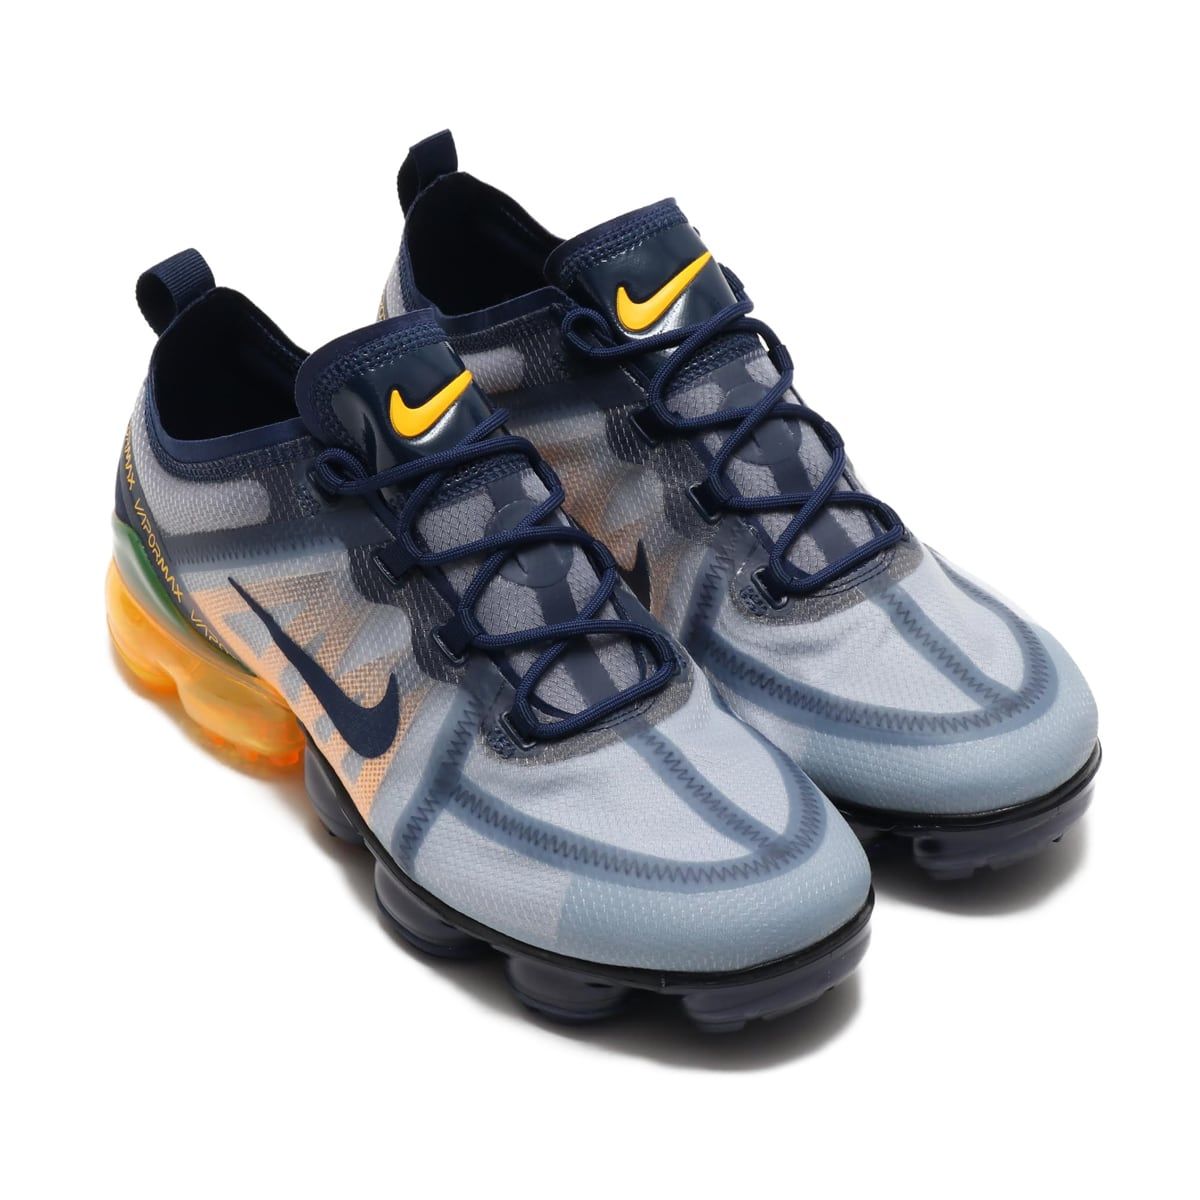 NIKE AIR VAPORMAX 2019 MID NVY/MID NVY-LSR ORNG-OBSDN 19SU-S_photo_large